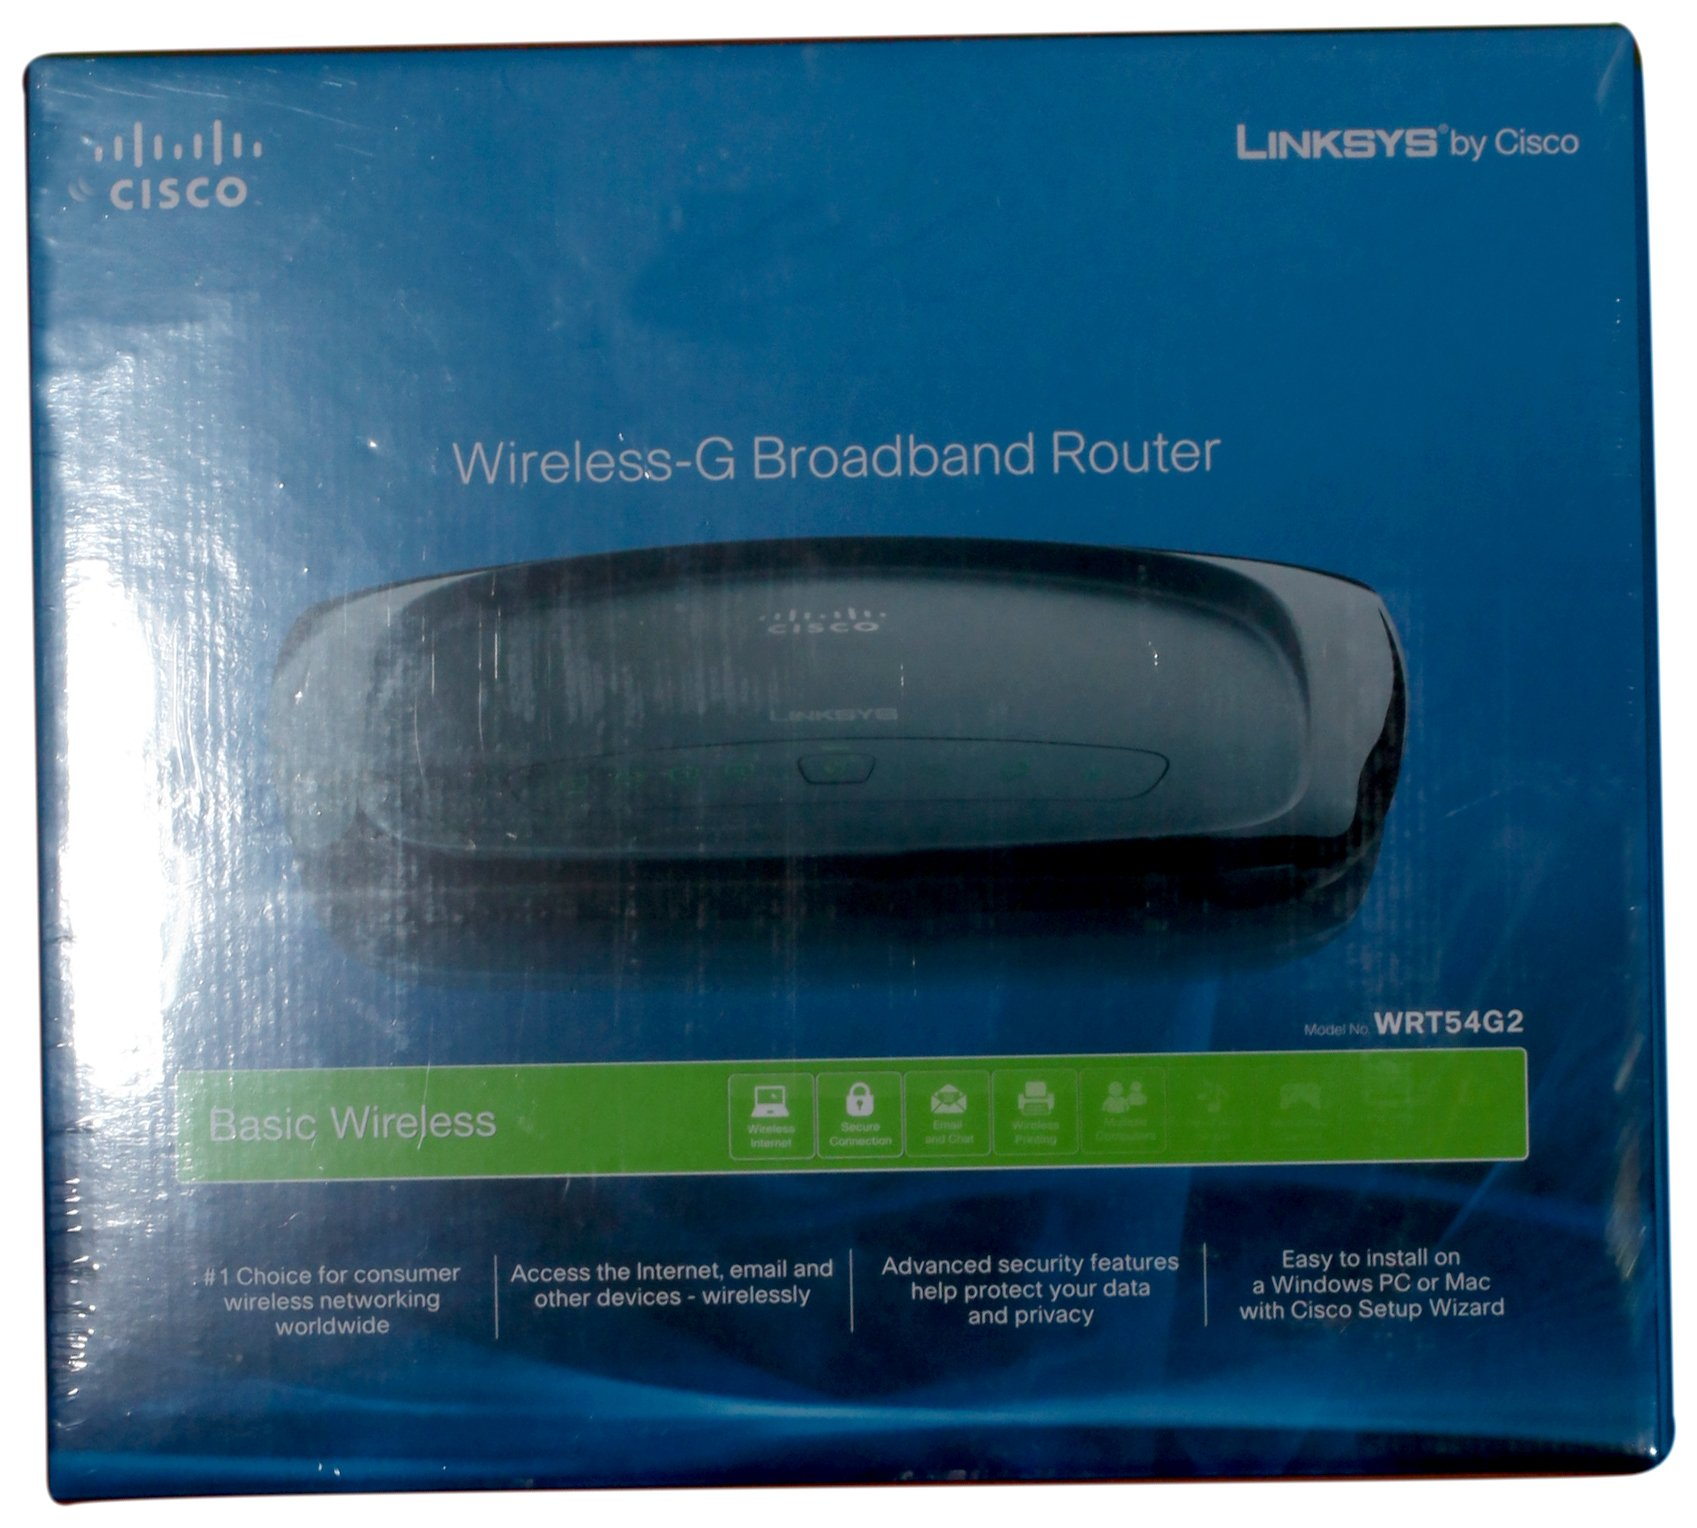 Cisco-Linksys WRT54G2 Wireless-G Broadband Router by Linksys